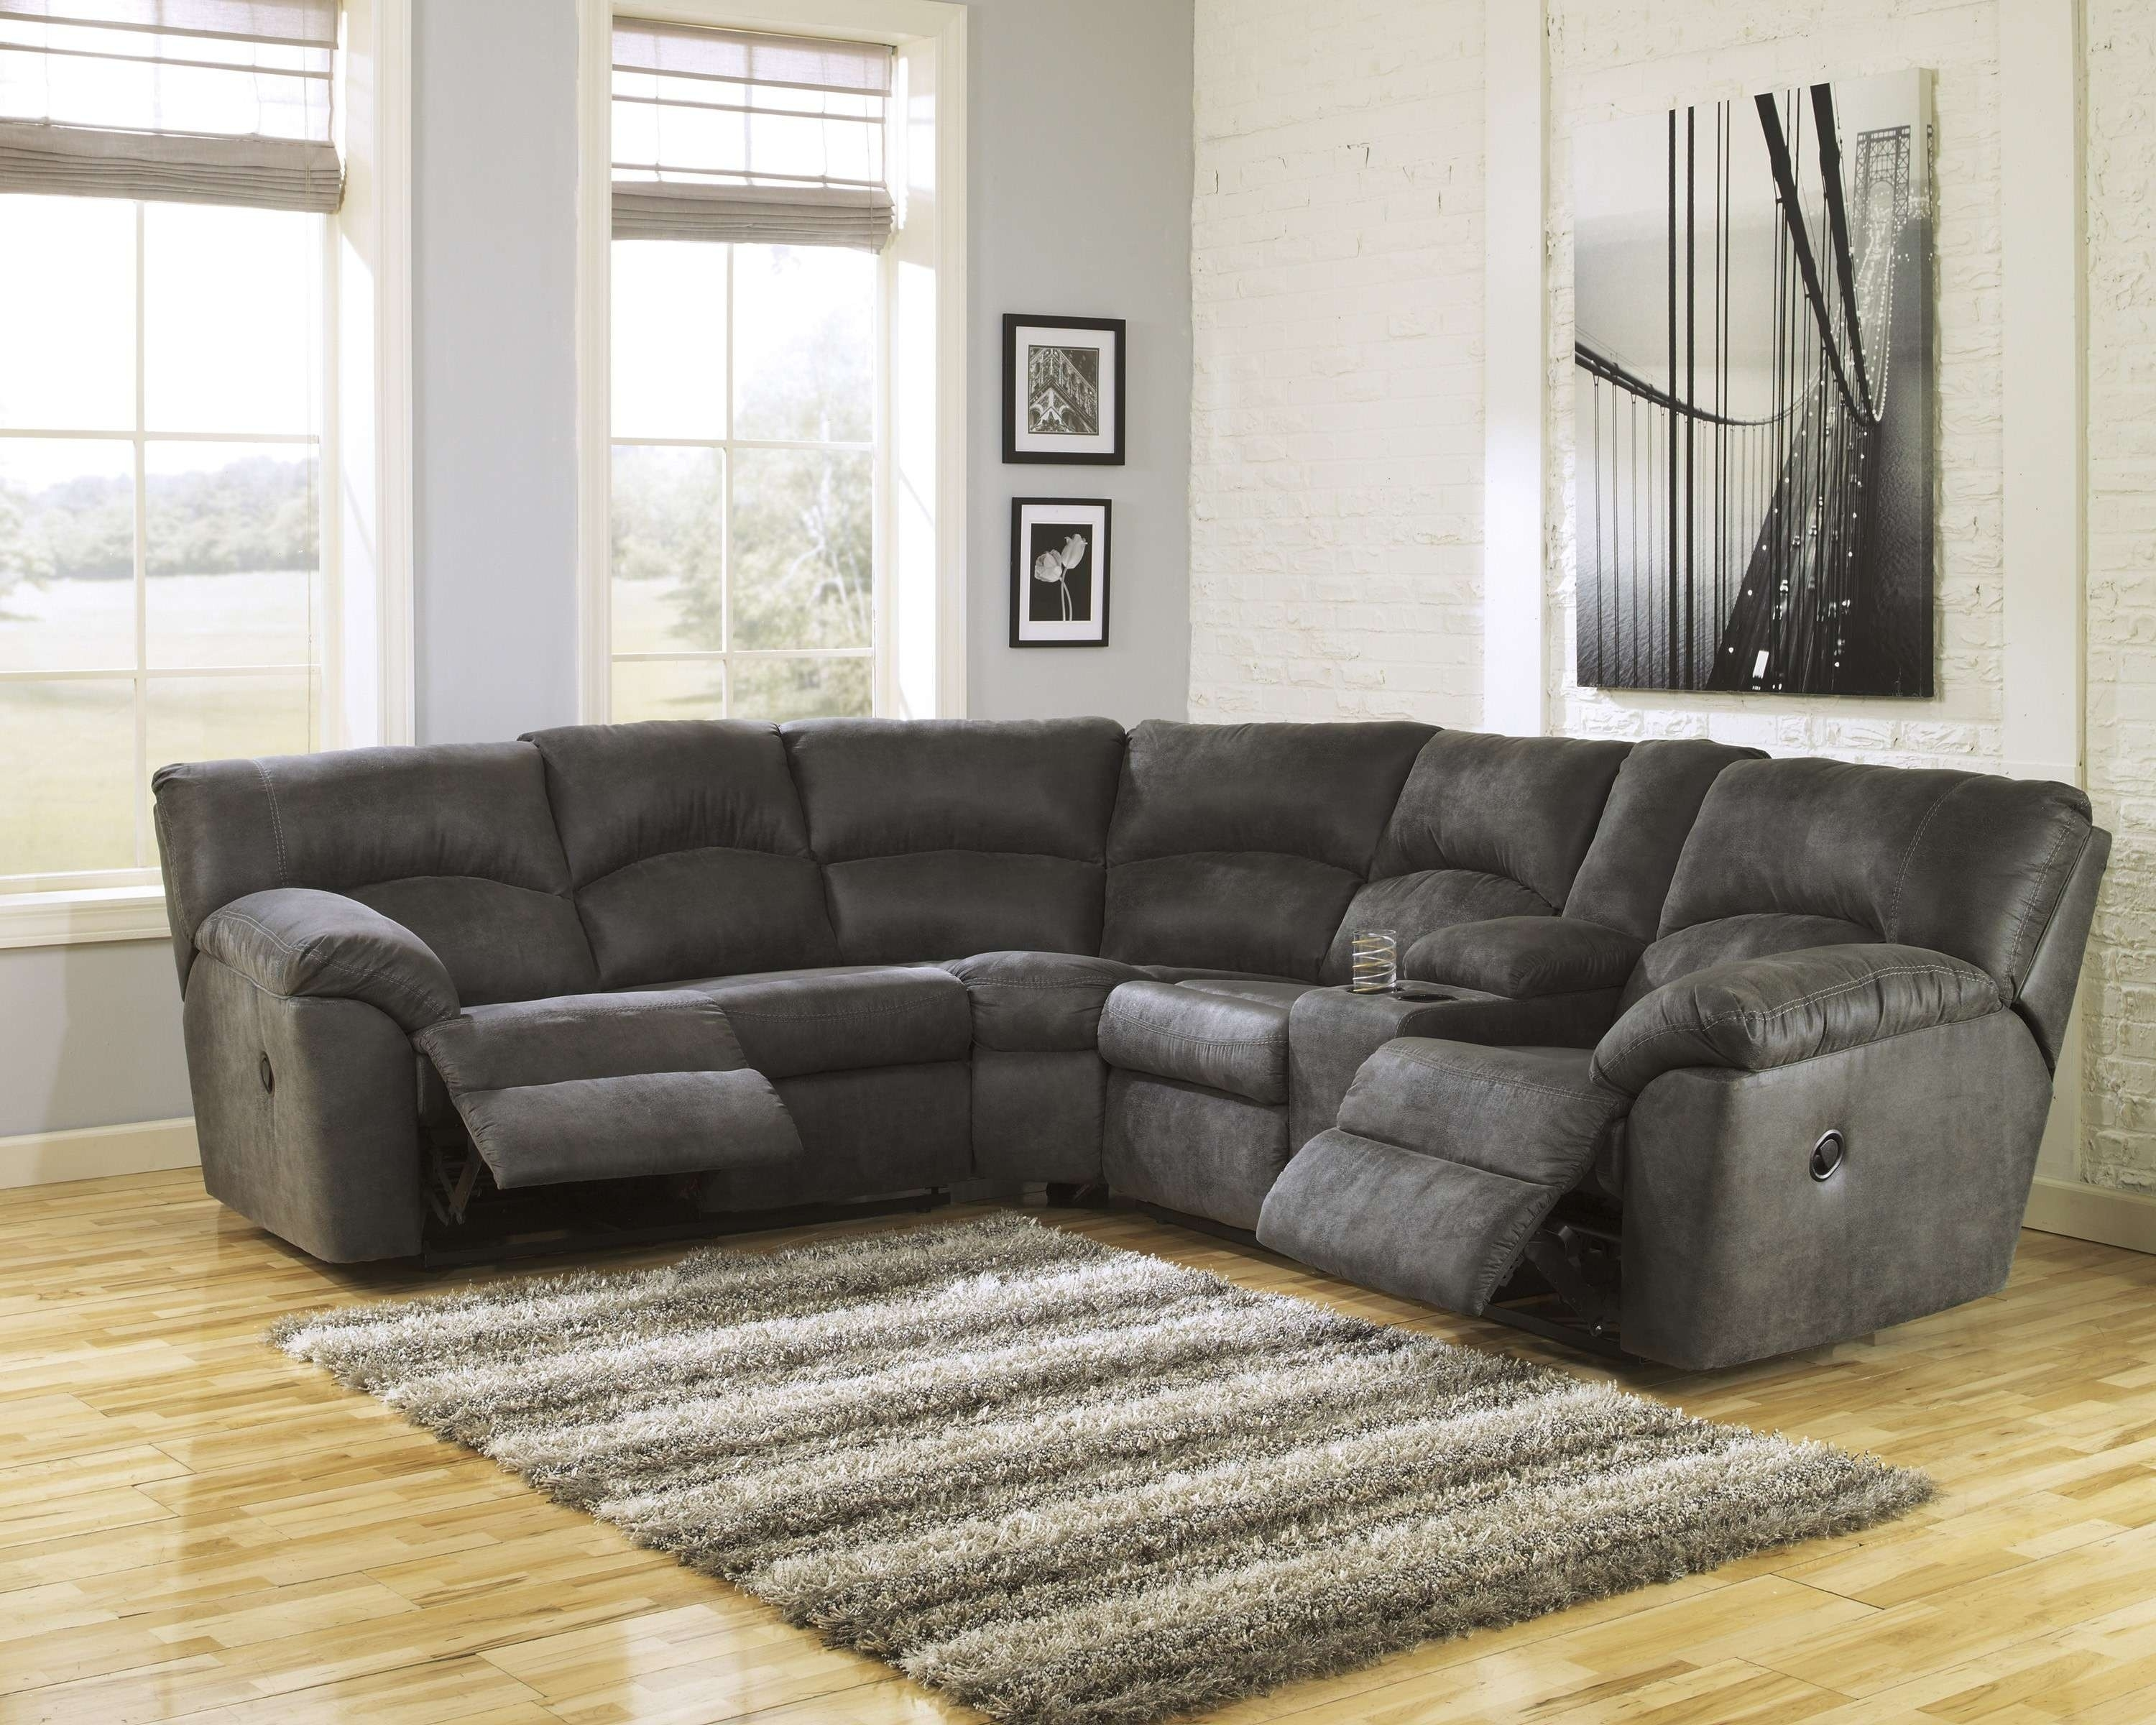 Dark Grey Sectional - Tidex throughout Lucy Dark Grey 2 Piece Sectionals With Laf Chaise (Image 11 of 30)